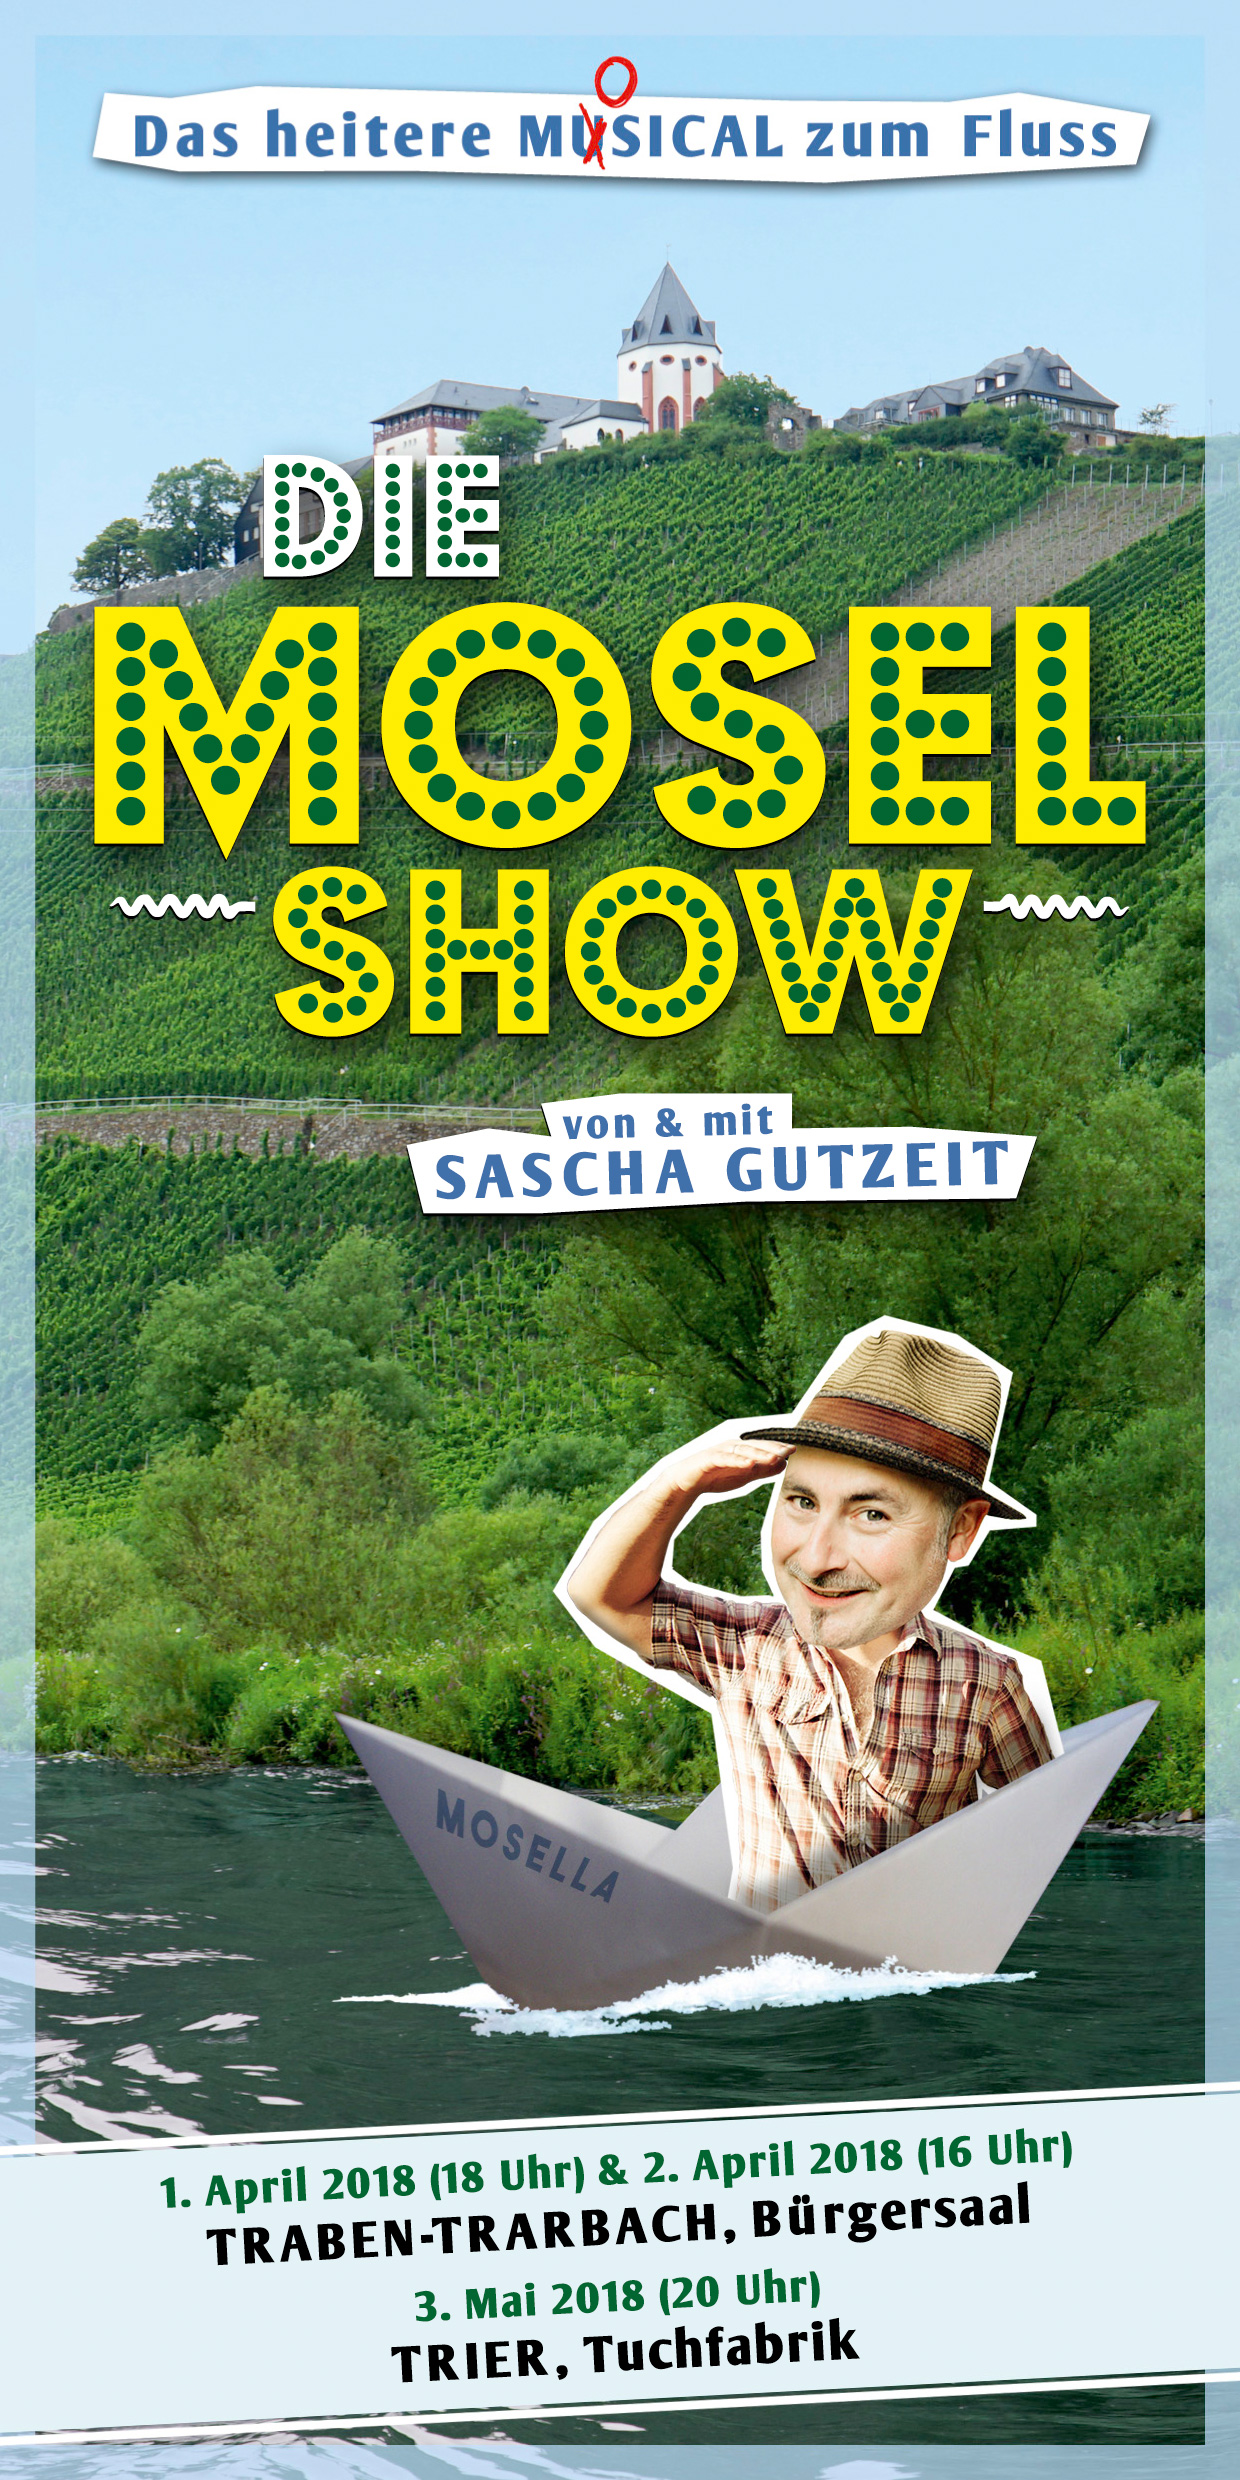 Die Mosel-Show (Flyer 2018)